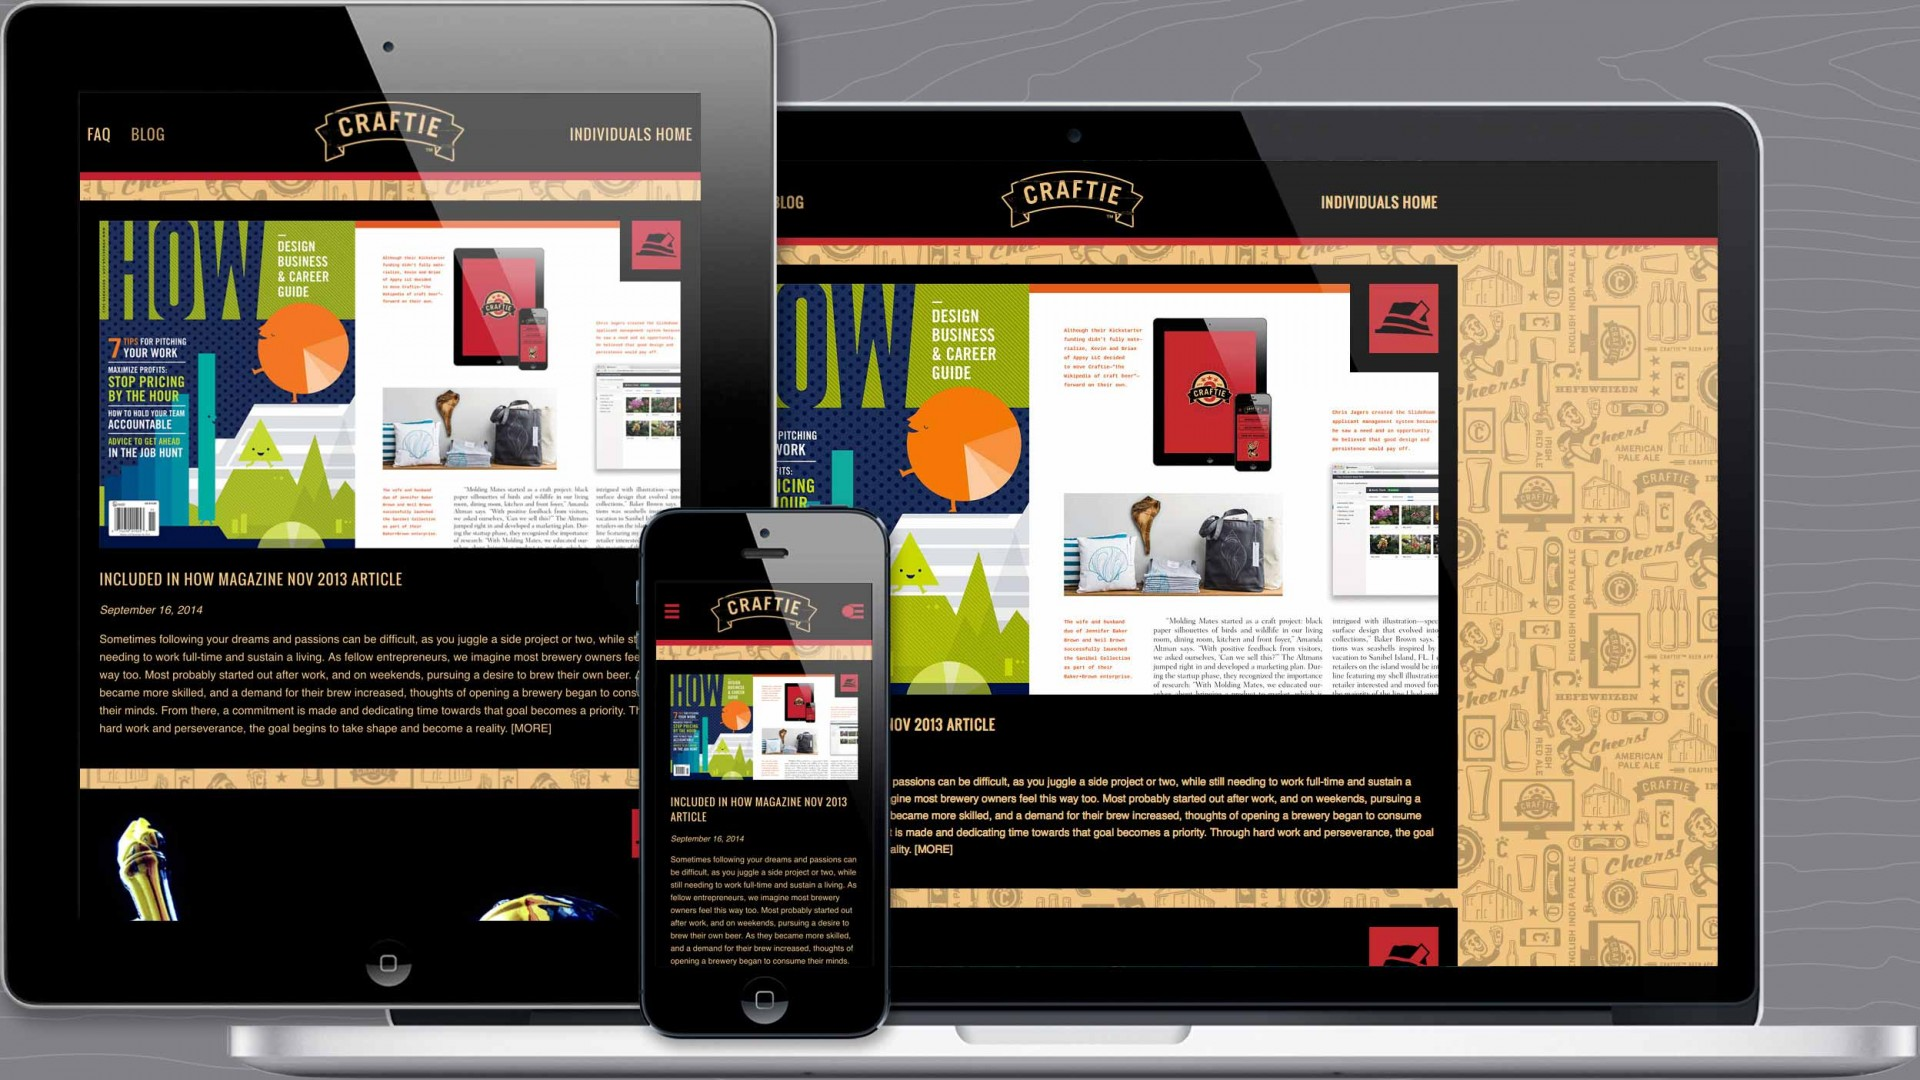 Blog page of Craftie™ responsive marketing website.